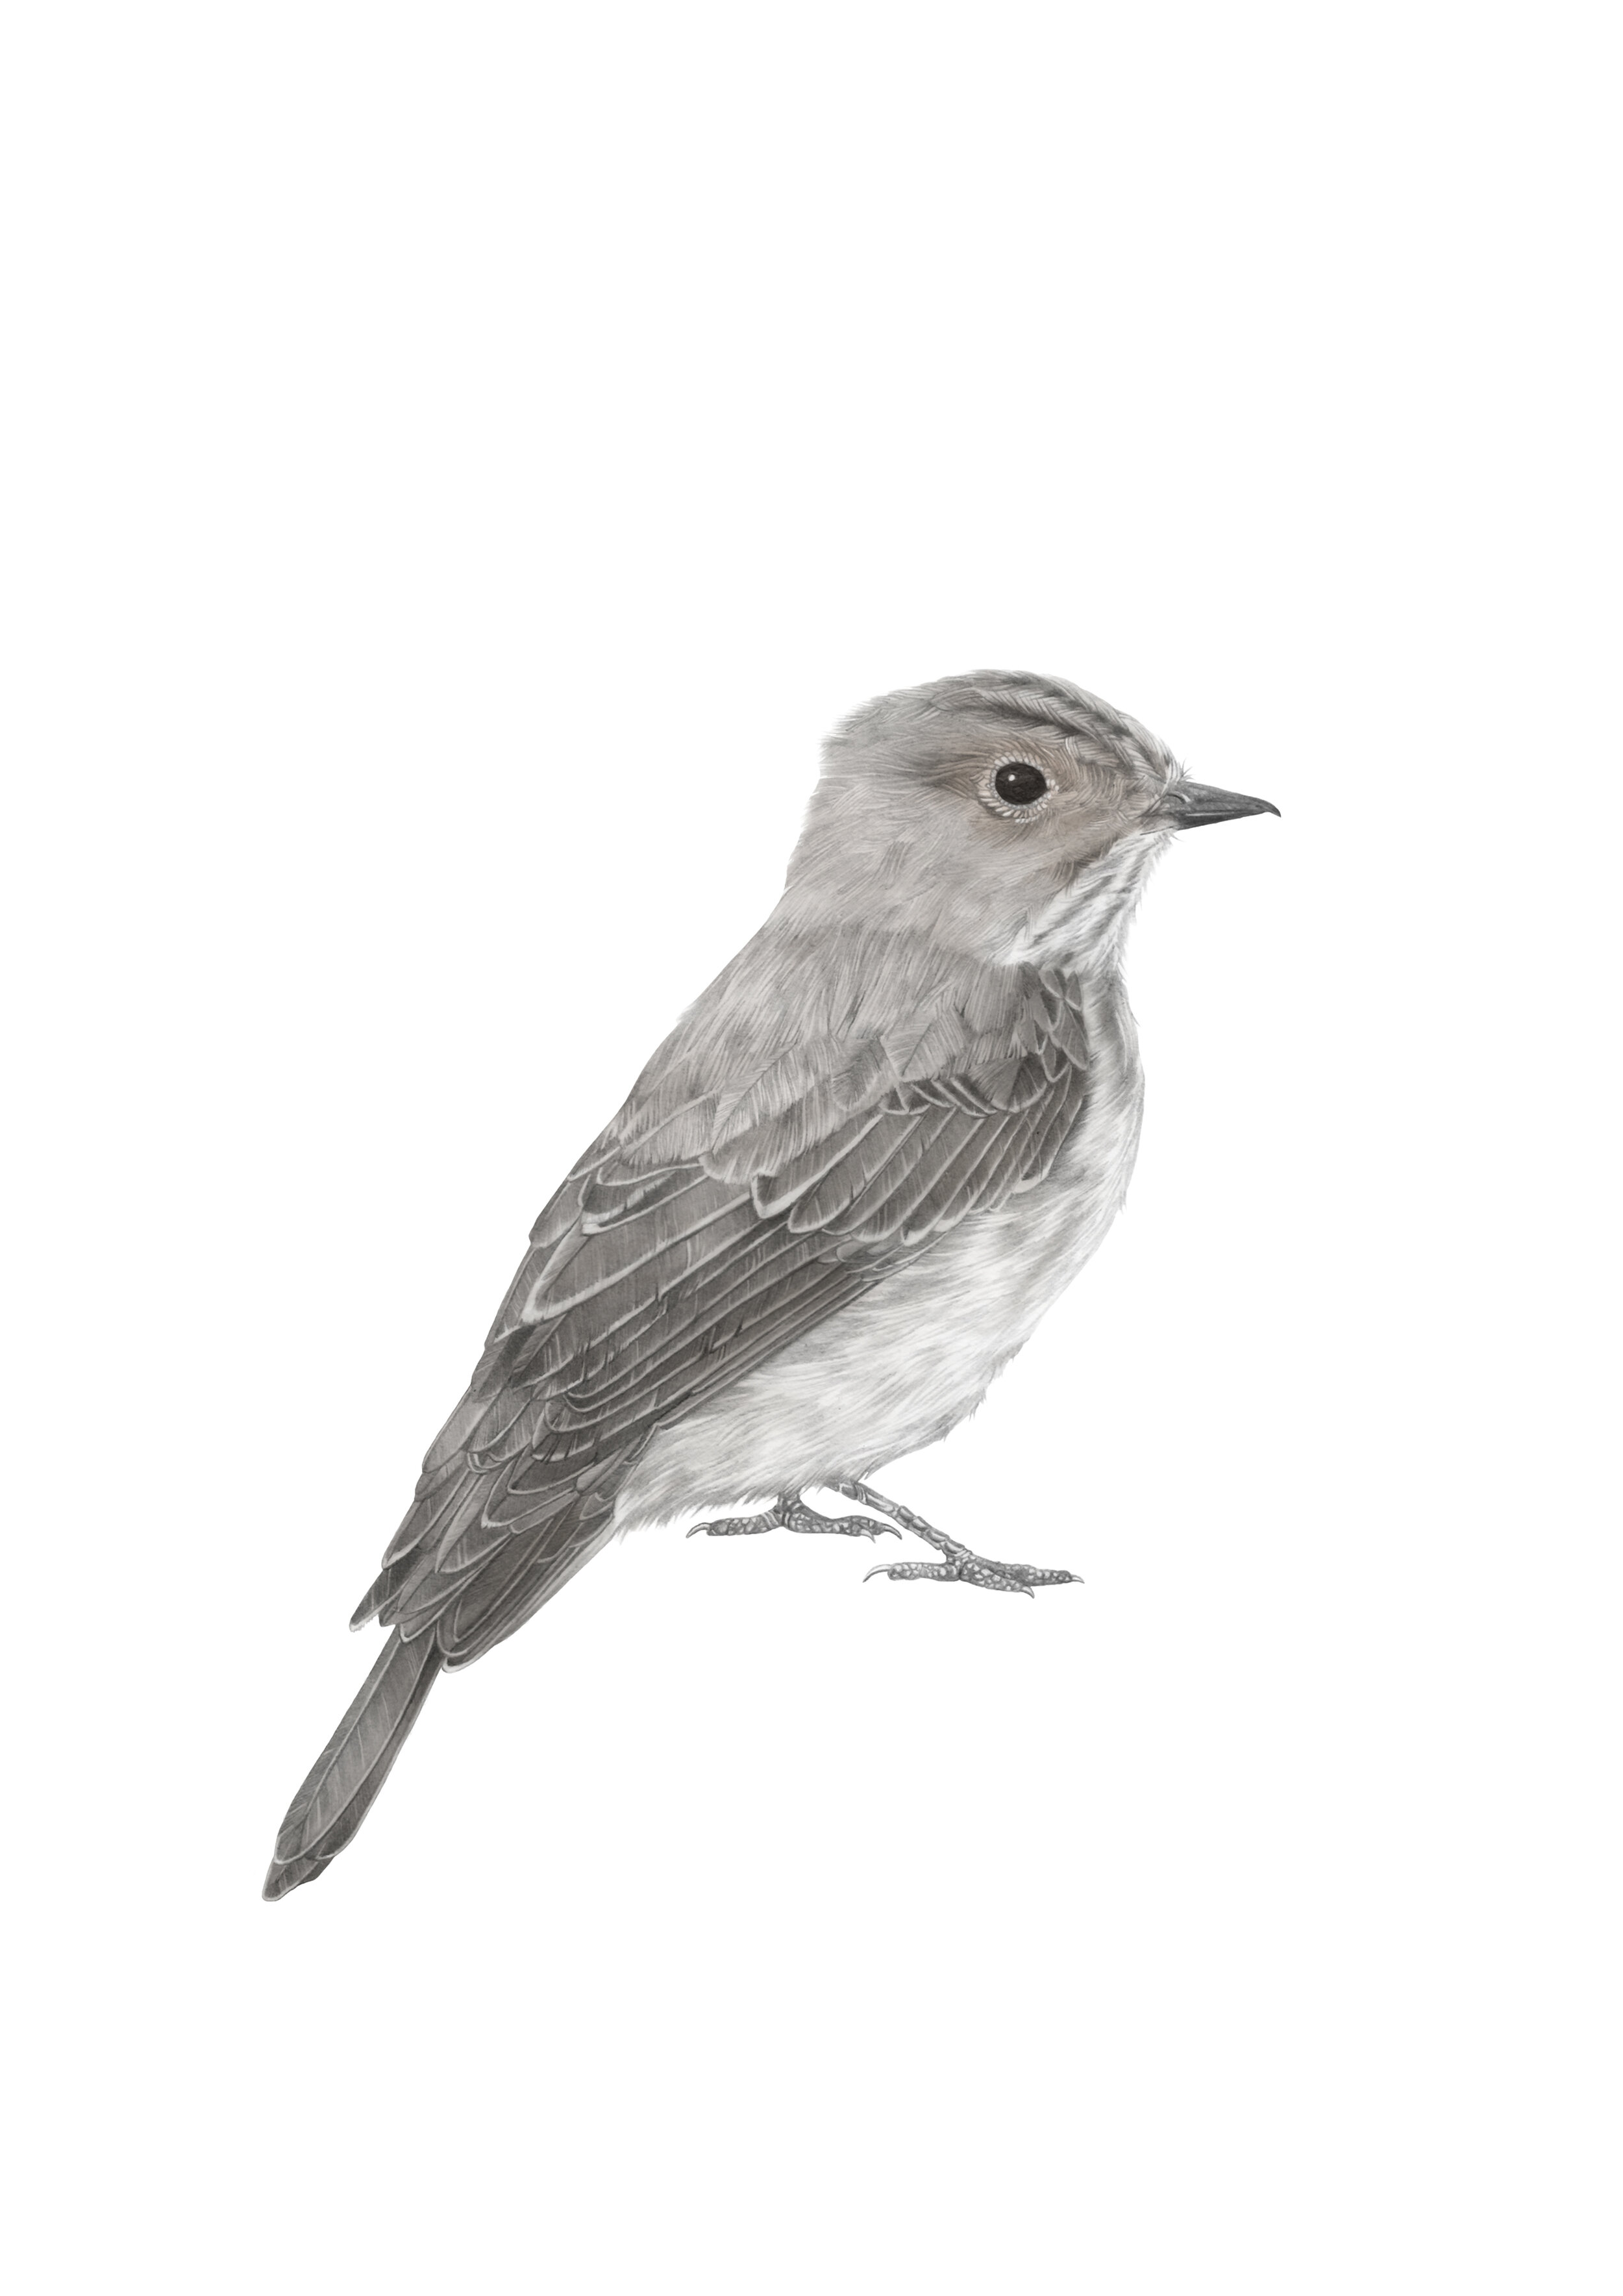 spotted fly catcher A4 RGB.jpg